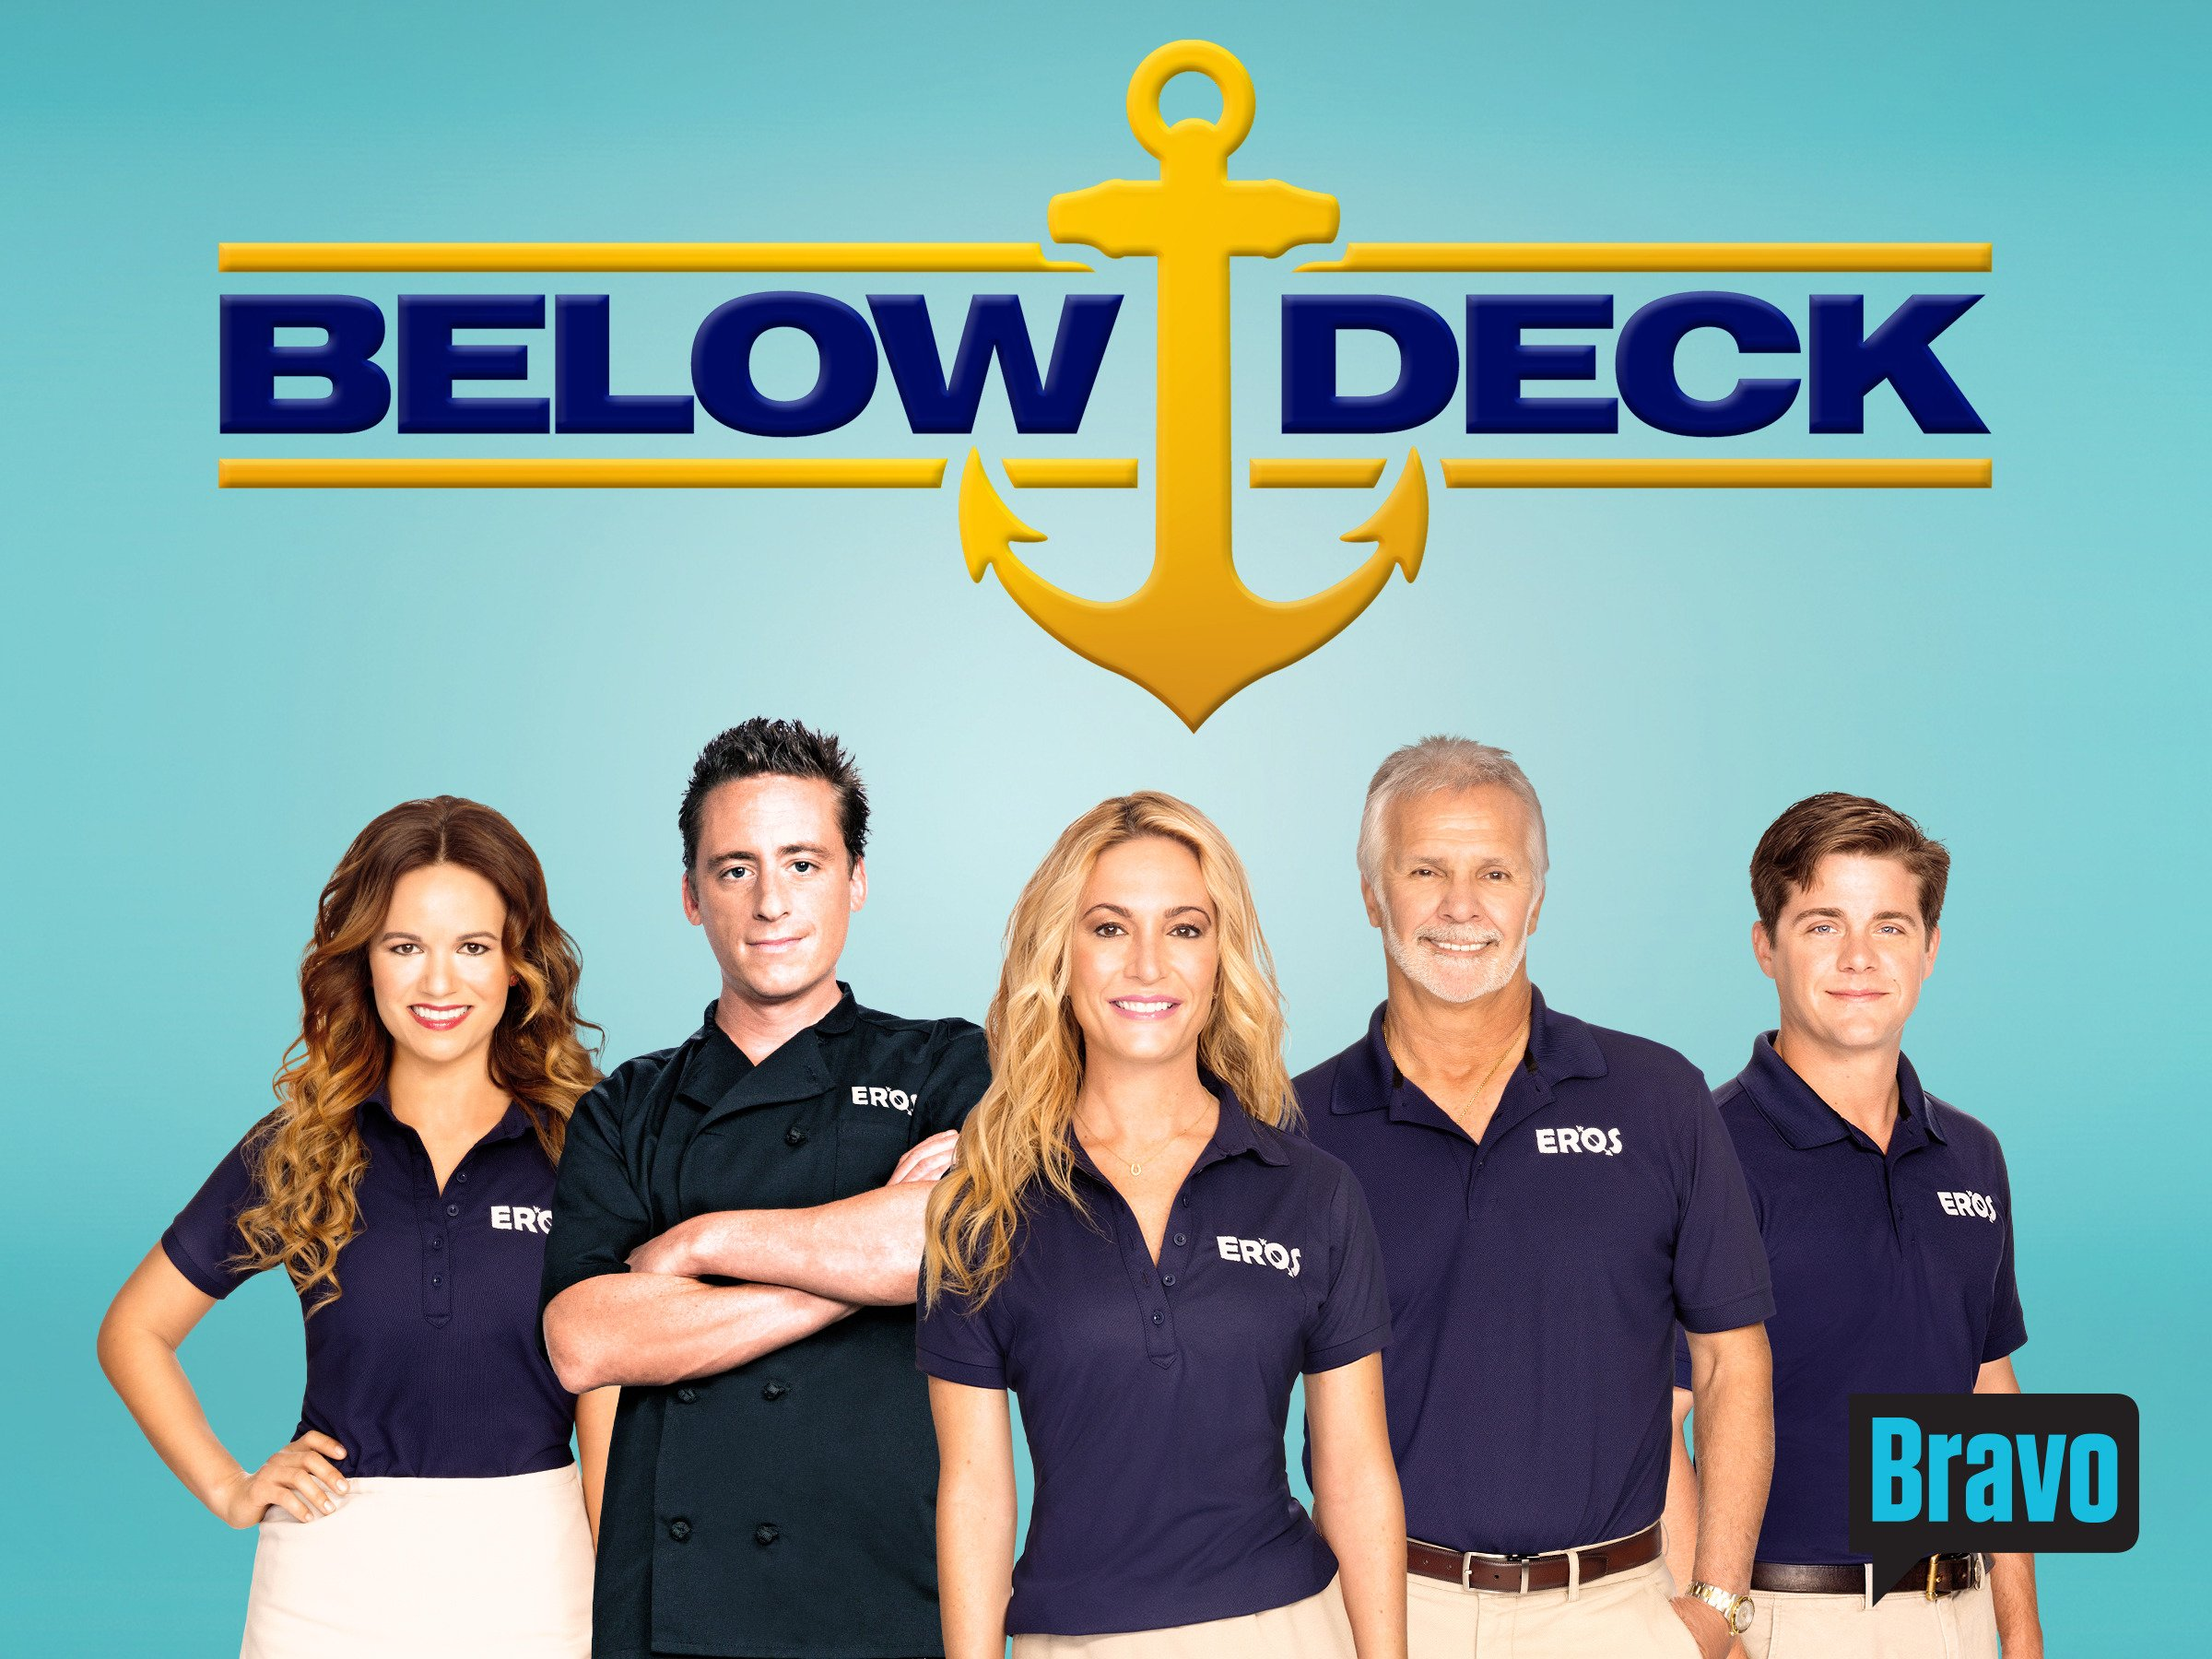 watch below deck online free season 3